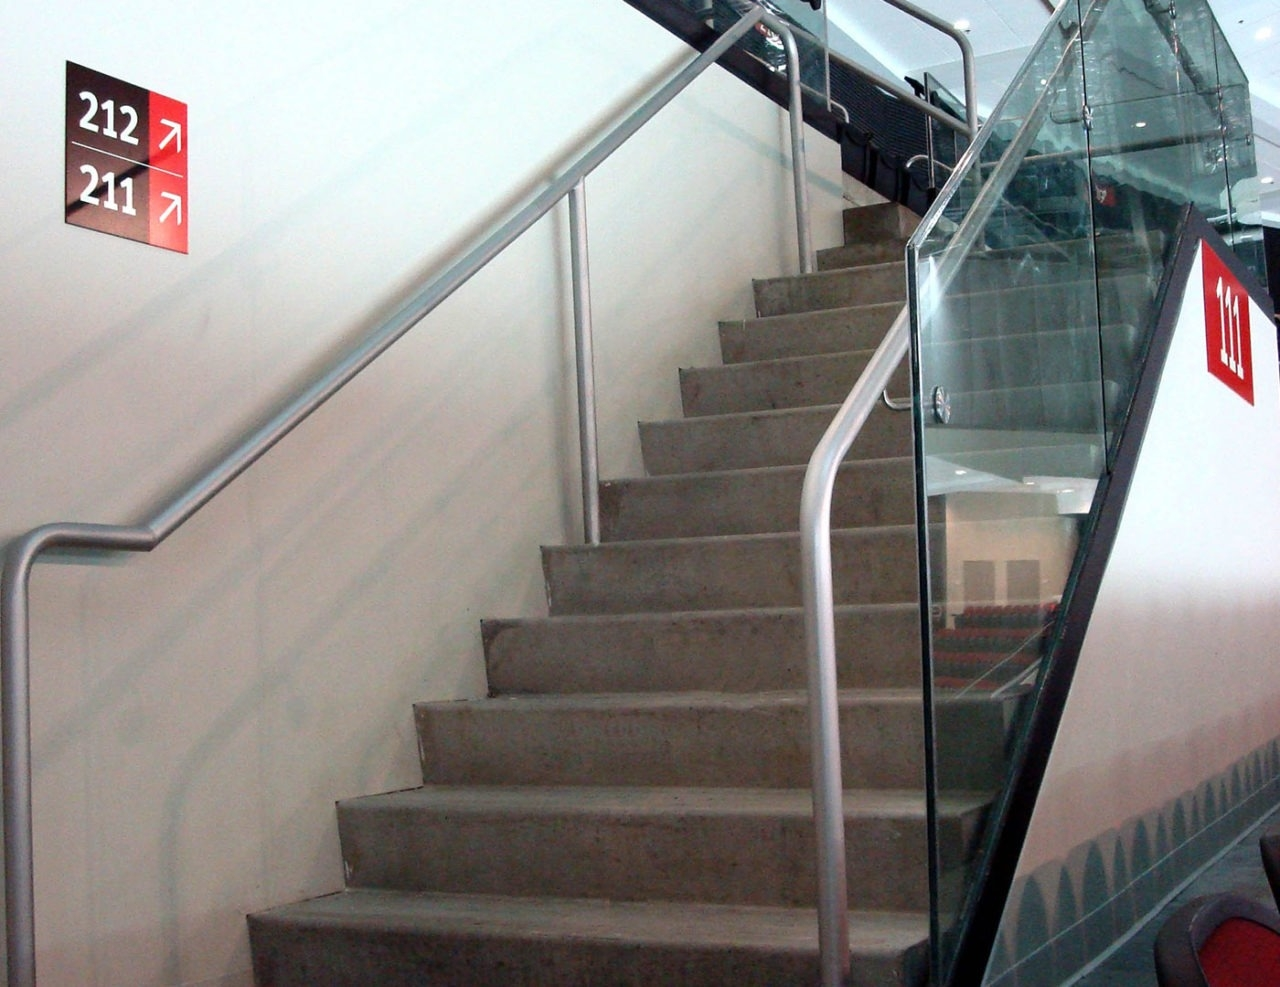 Griprail Commercial Metal Handrails Trex Commercial Products   Aluminium Handrails For Stairs   Outdoor   Plastic   Movable   Aluminum Oval Shaped   Vertical 6Mm Ss Rope Glass